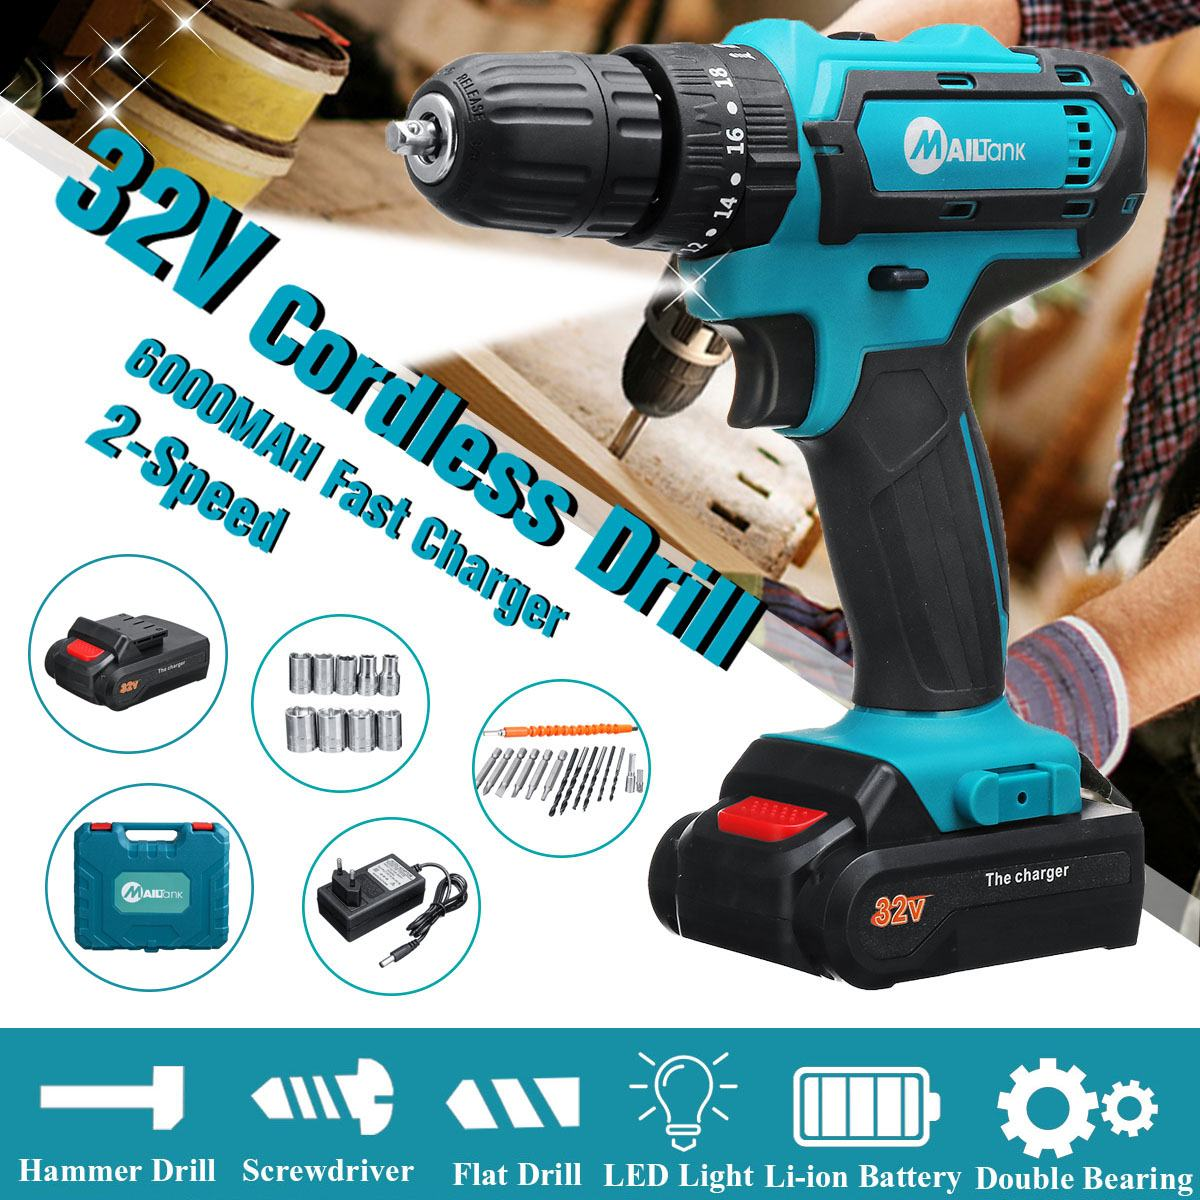 32V Electric Drill Cordless Drill 2 Speed 3 IN1 Electric Screwdriver Hammer Impact Drill Power Driver With Battery LED Light